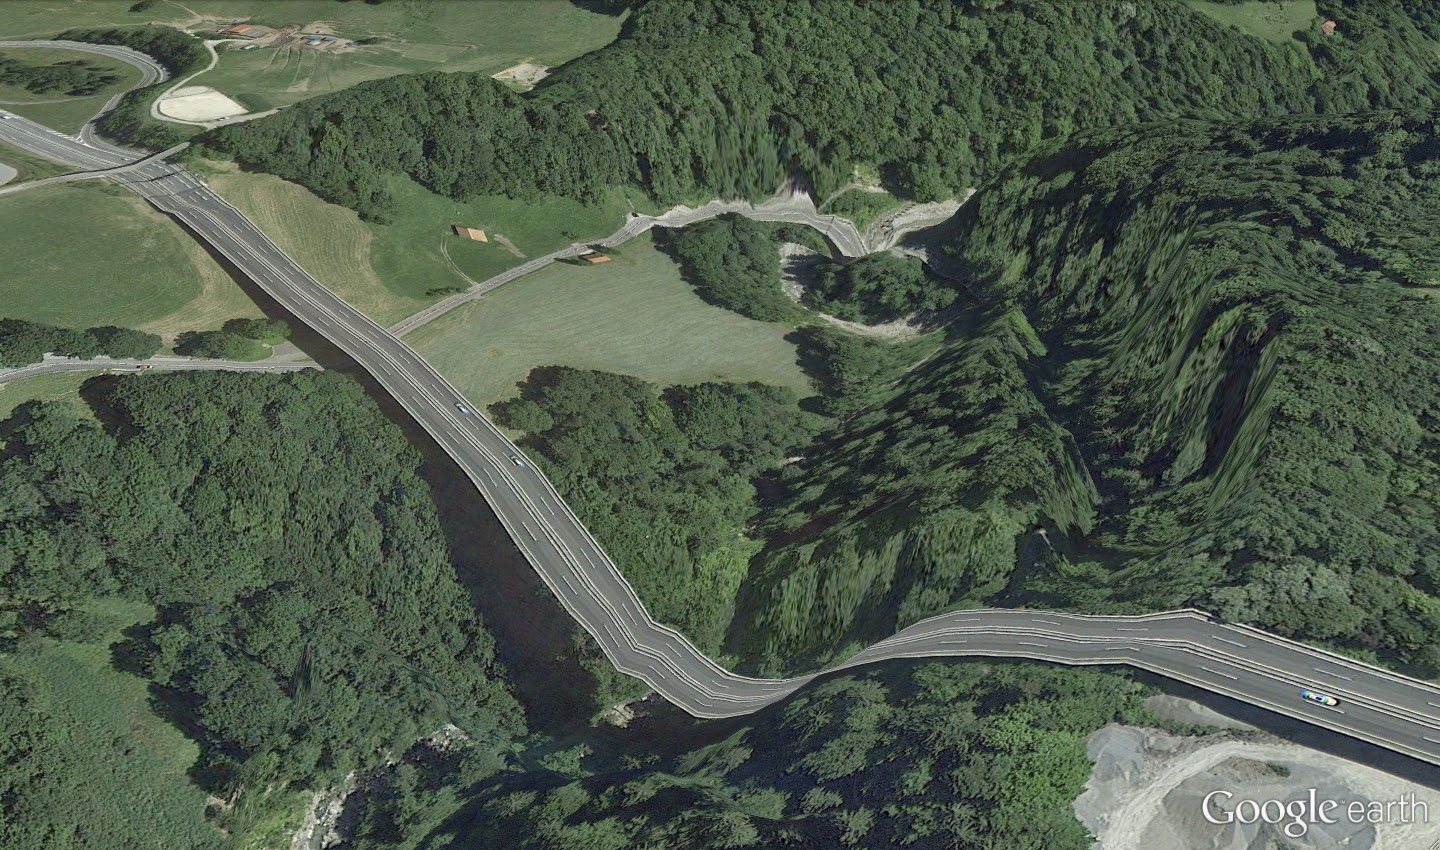 21-Switzerland-Clement-Valla-Postcards-From-Google-Earth-www-designstack-co